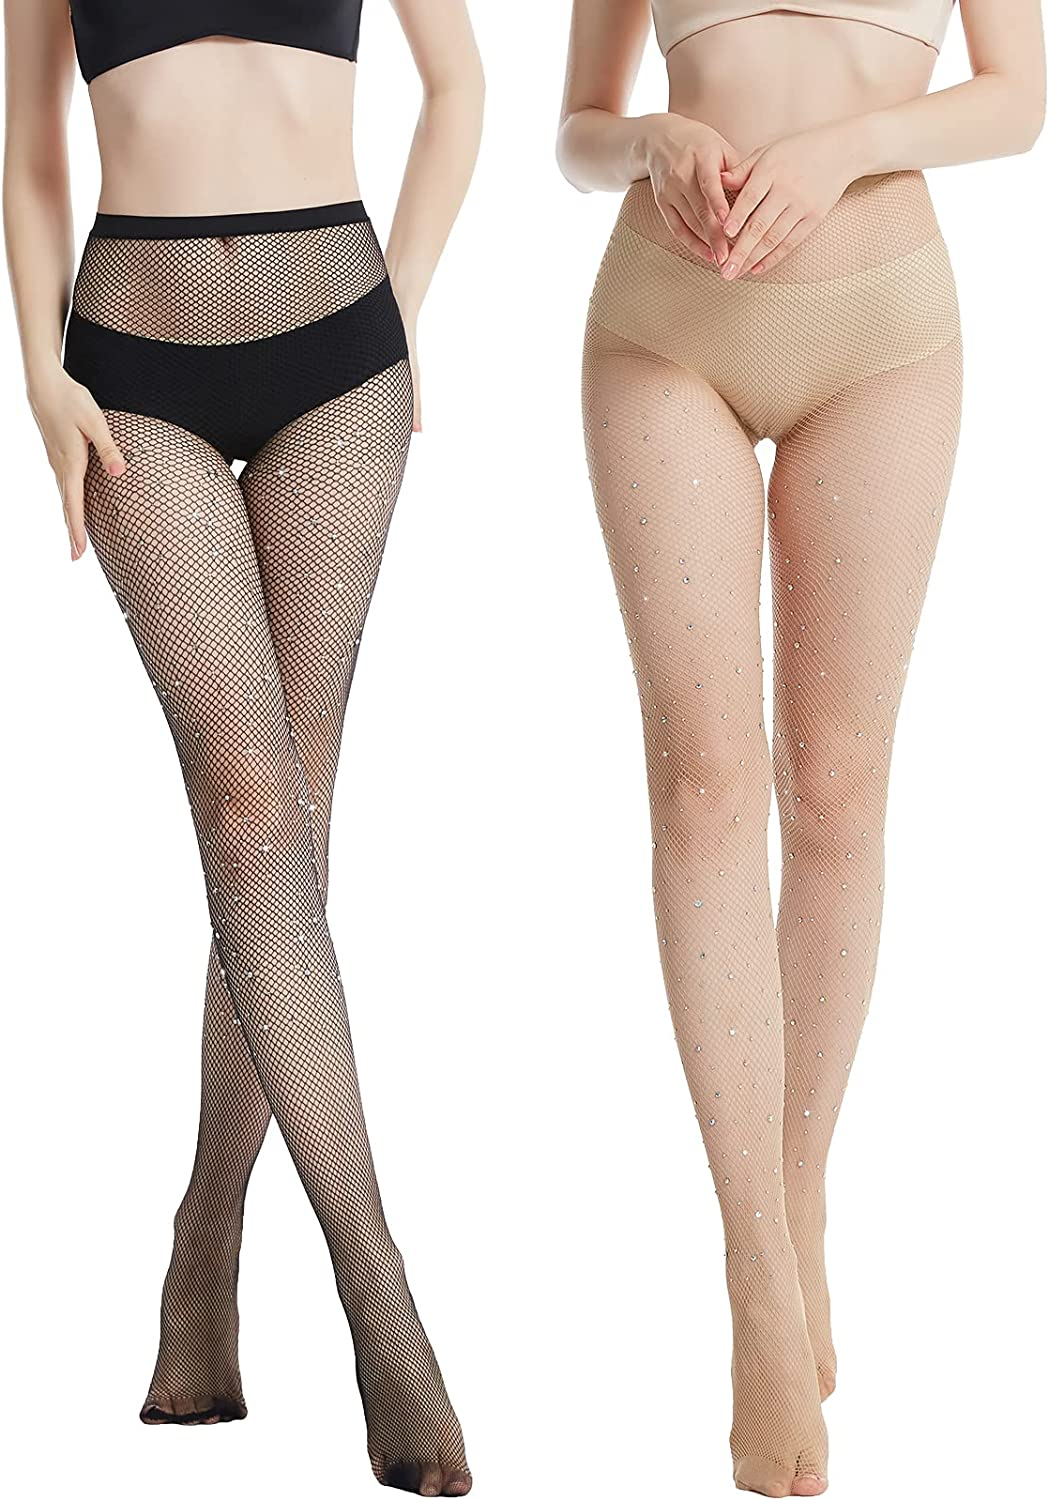 Sheer Rhinestone Fishnet Stockings - Cheap tights Sparkly Bl Courier shipping free net Fish